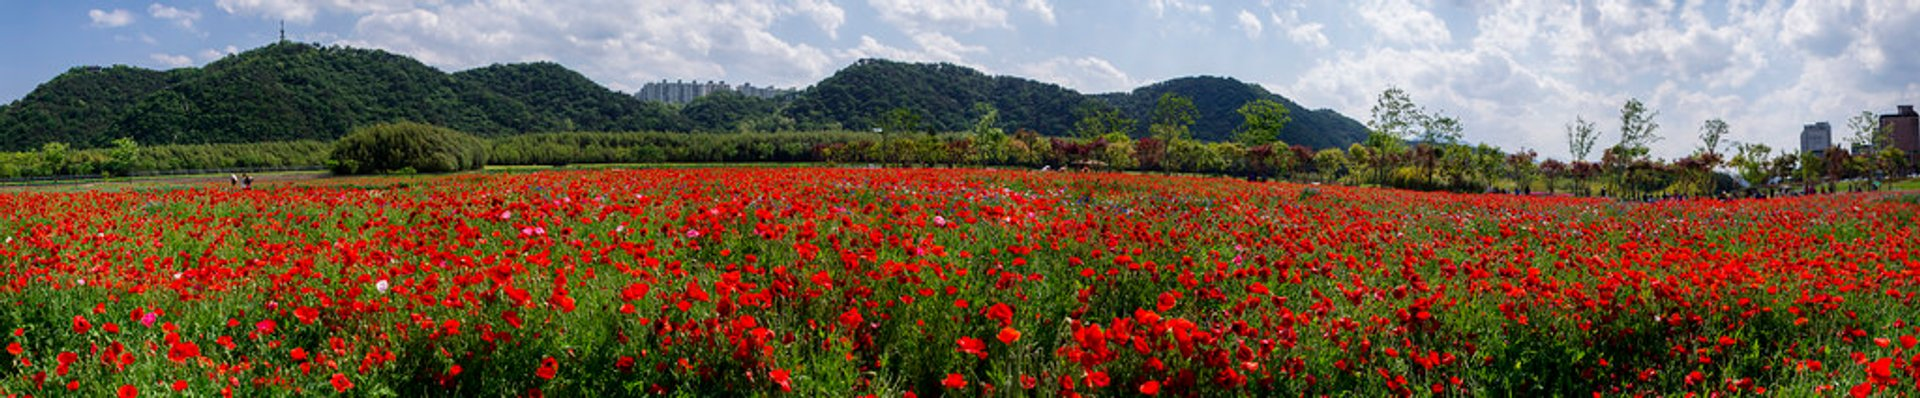 Poppy Fields in South Korea - Best Season 2020